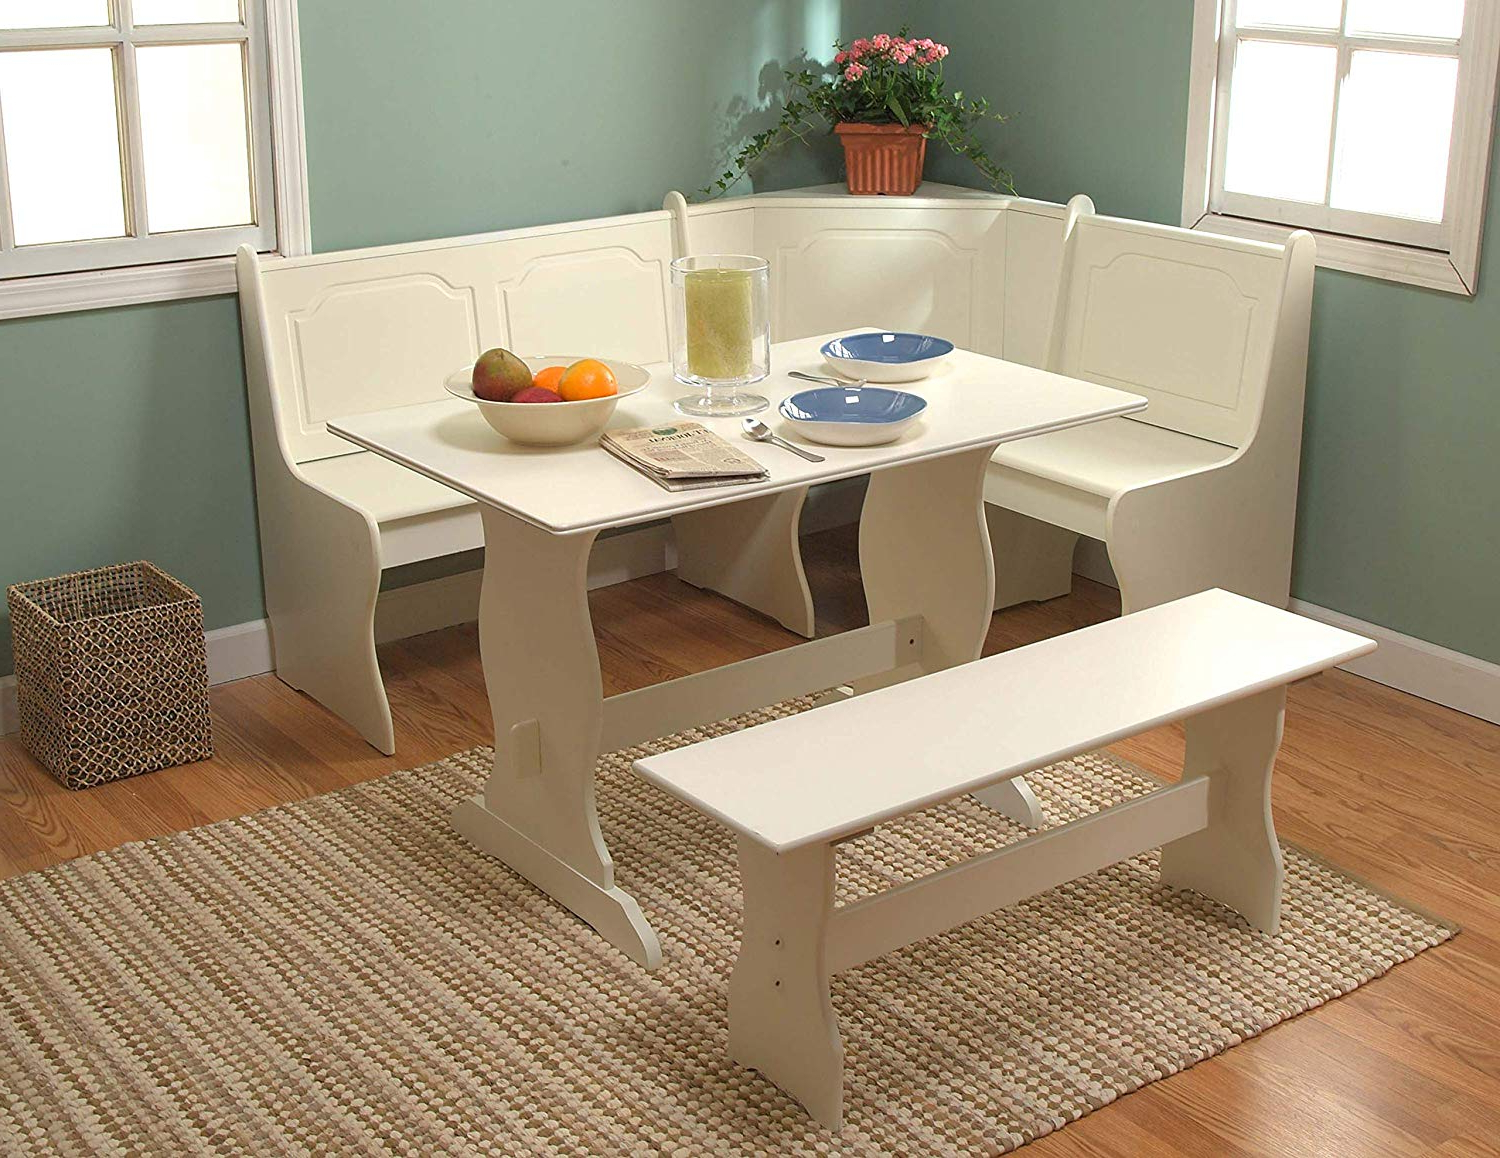 Most Current Ligon 3 Piece Breakfast Nook Dining Sets Inside Target Marketing Systems 3 Piece Breakfast Nook Dining Set With A L Shaped  Storage Bench And A Trestle Style Dining Table And Bench, Antique White (View 12 of 20)